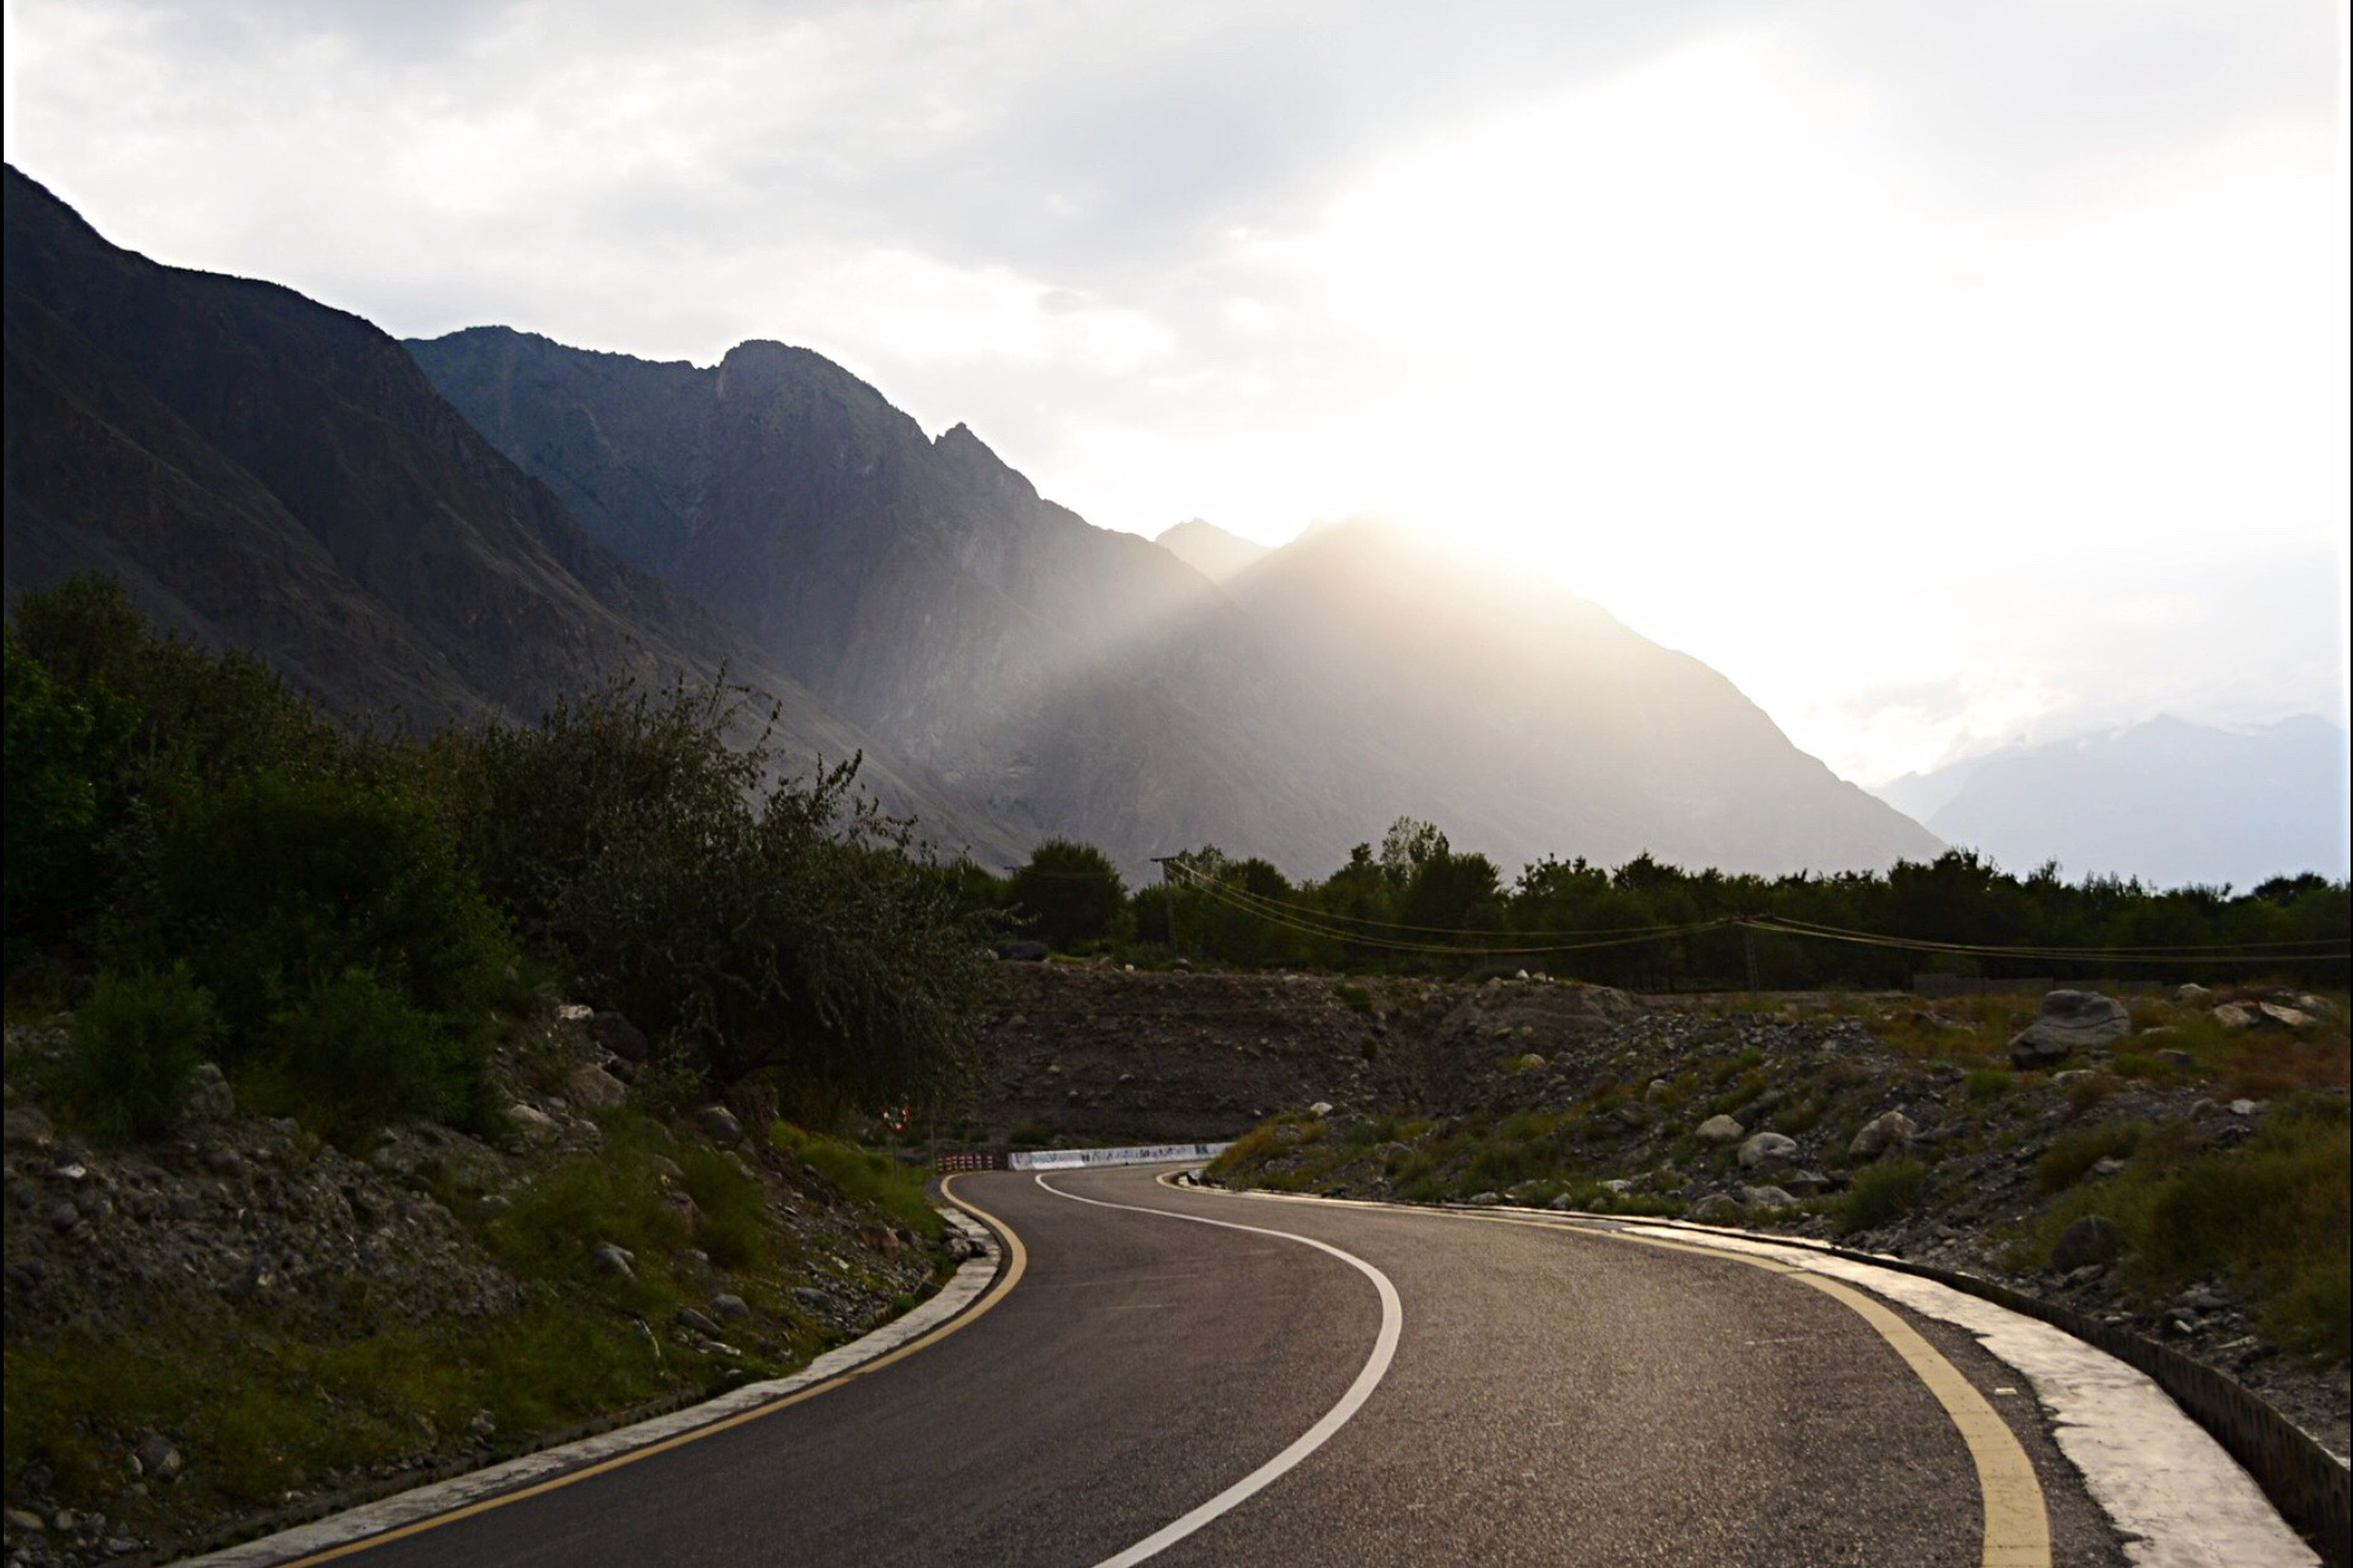 mountain, road, transportation, the way forward, tranquil scene, sunlight, landscape, tree, tranquility, scenics, sky, mountain range, sunbeam, beauty in nature, curve, sun, nature, non-urban scene, sunny, day, country road, remote, lens flare, outdoors, cloud - sky, majestic, countryside, green color, empty road